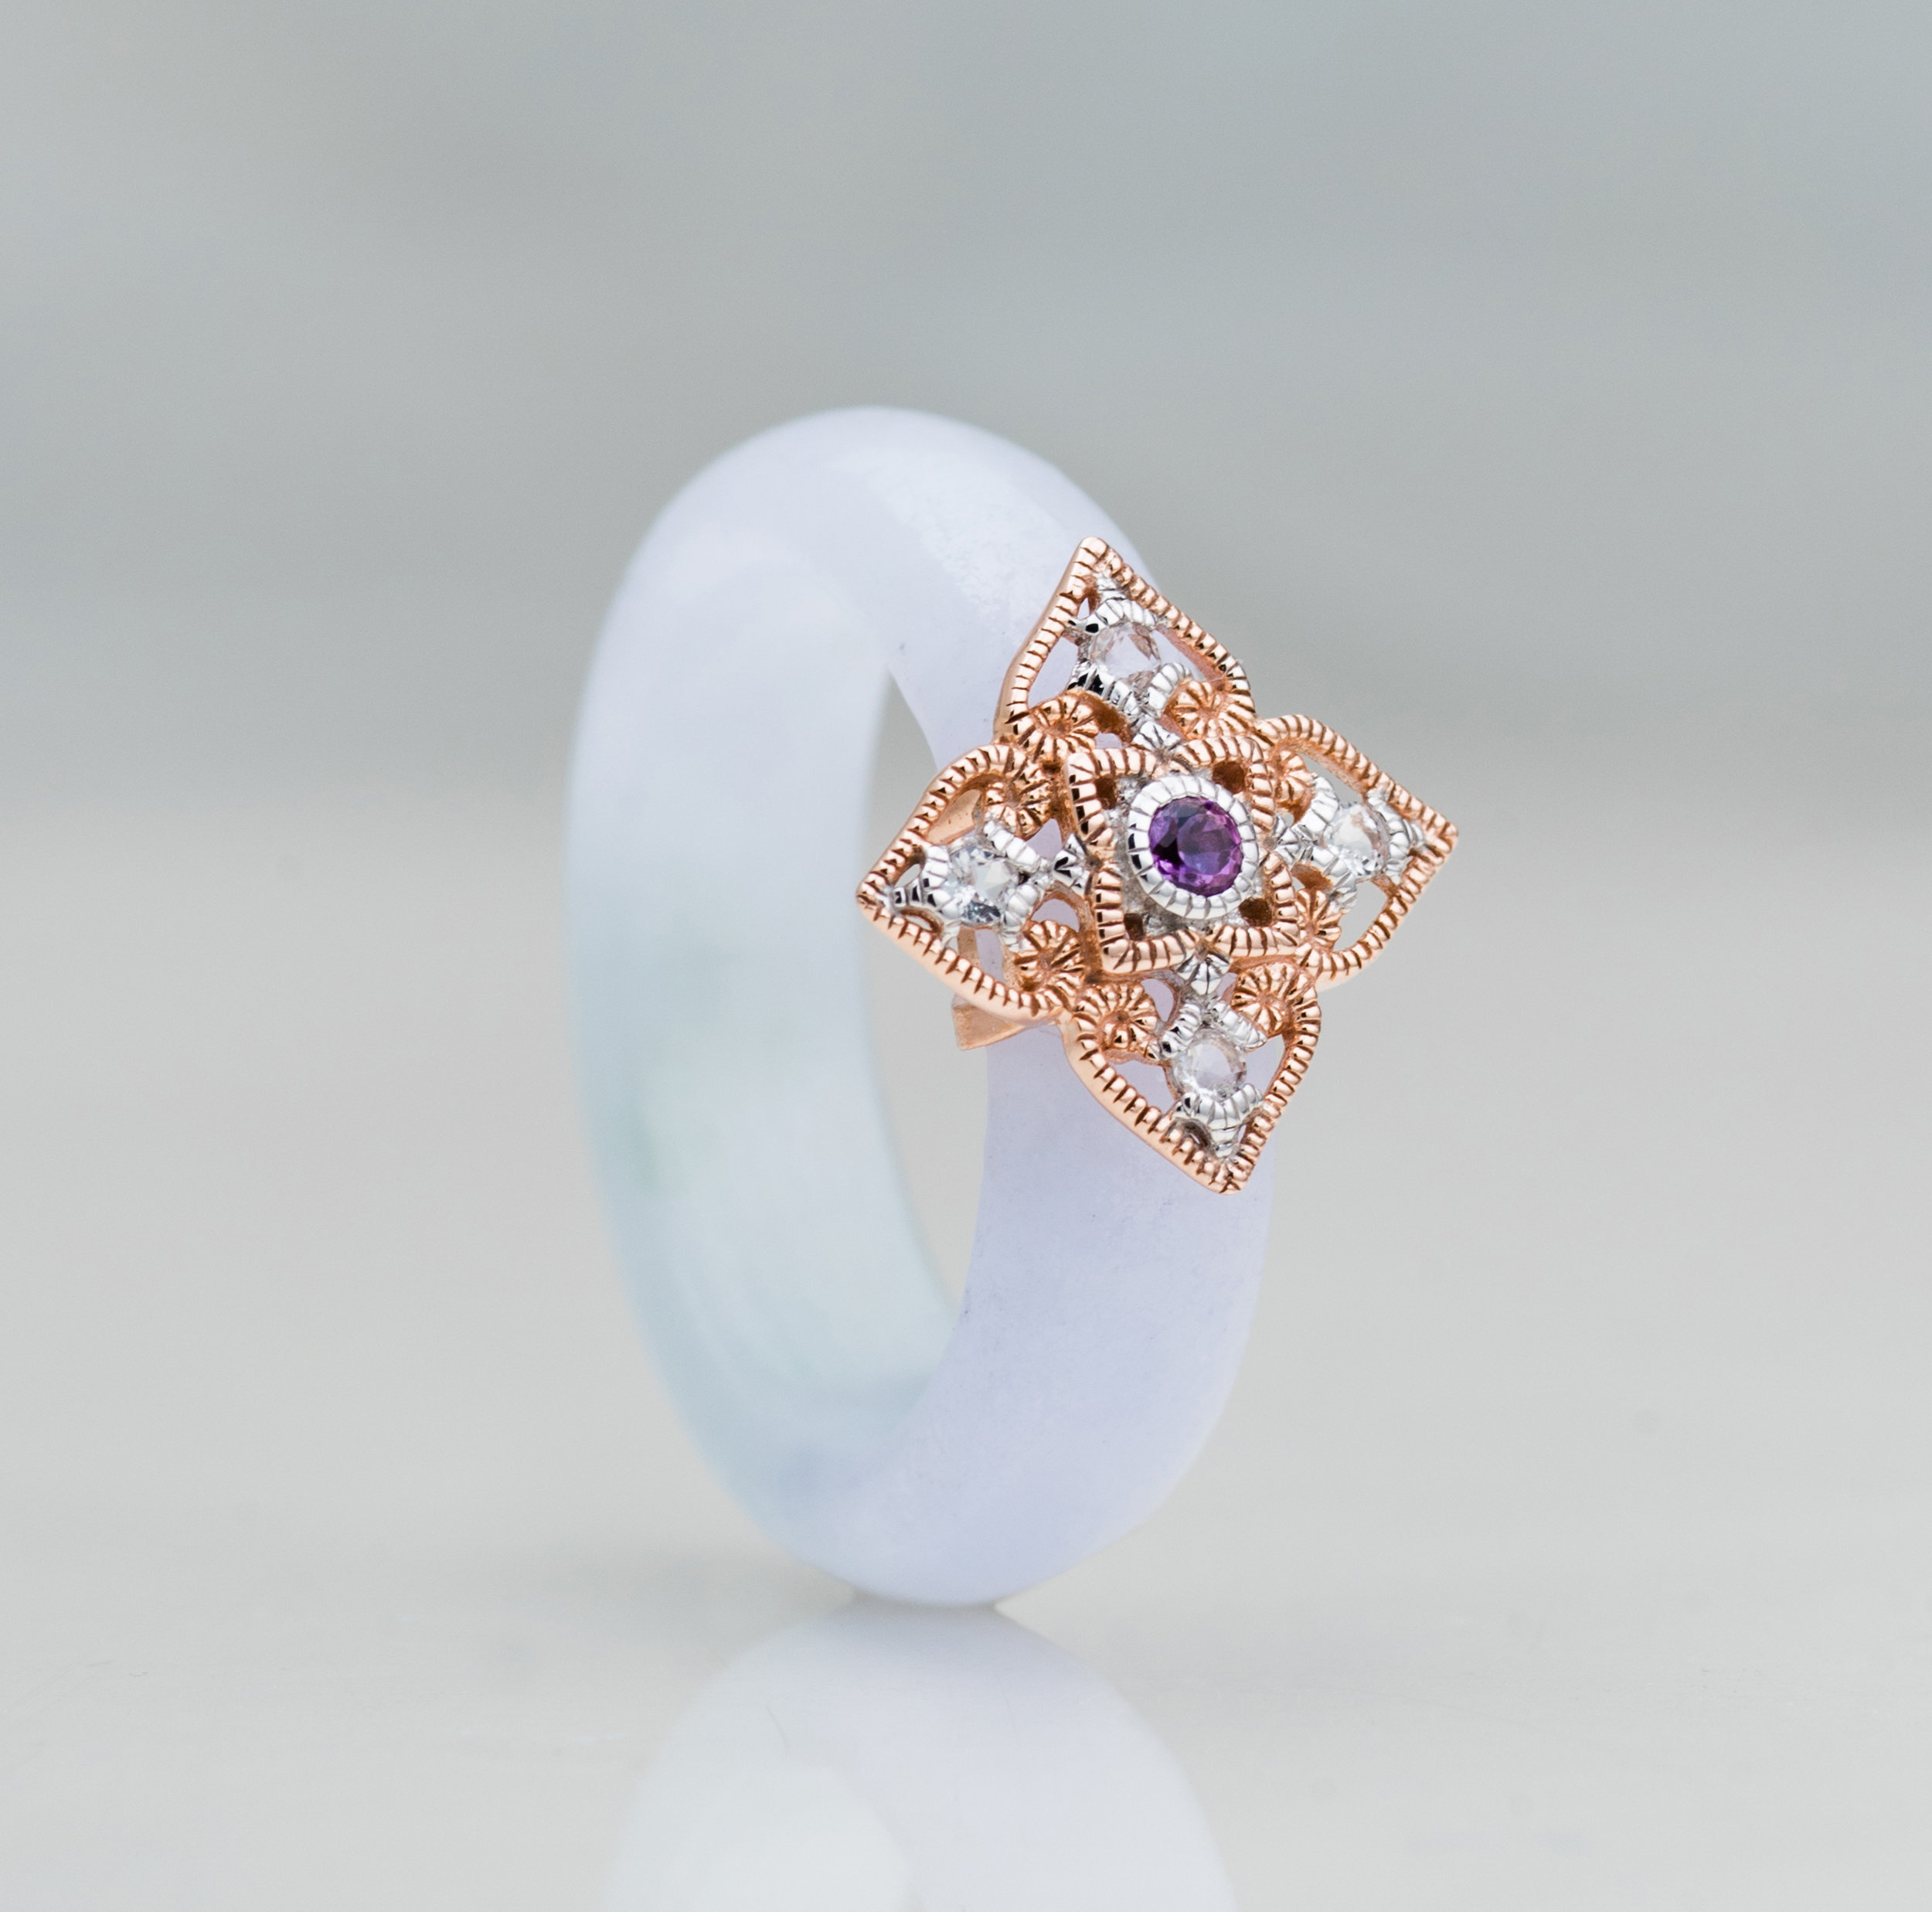 Amethyst: For Stress Relief - The official birthstone for individuals born in February, Amethyst's purple hue has been historically associated with royalty and luxury. Nature's own tranquiliser, it is said to calm and soothe one's inner emotions, dispelling fear and anxiety.Whilst it's easy to get carried away with life's hustle and bustle, the Peranakan Lace Ring in Amethyst can serve as a gentle reminder that despite the clichés, it's true that worrying does not empty tomorrow's troubles. So hang your inner turmoil at the door, kick back, take a deep breath, and relax.